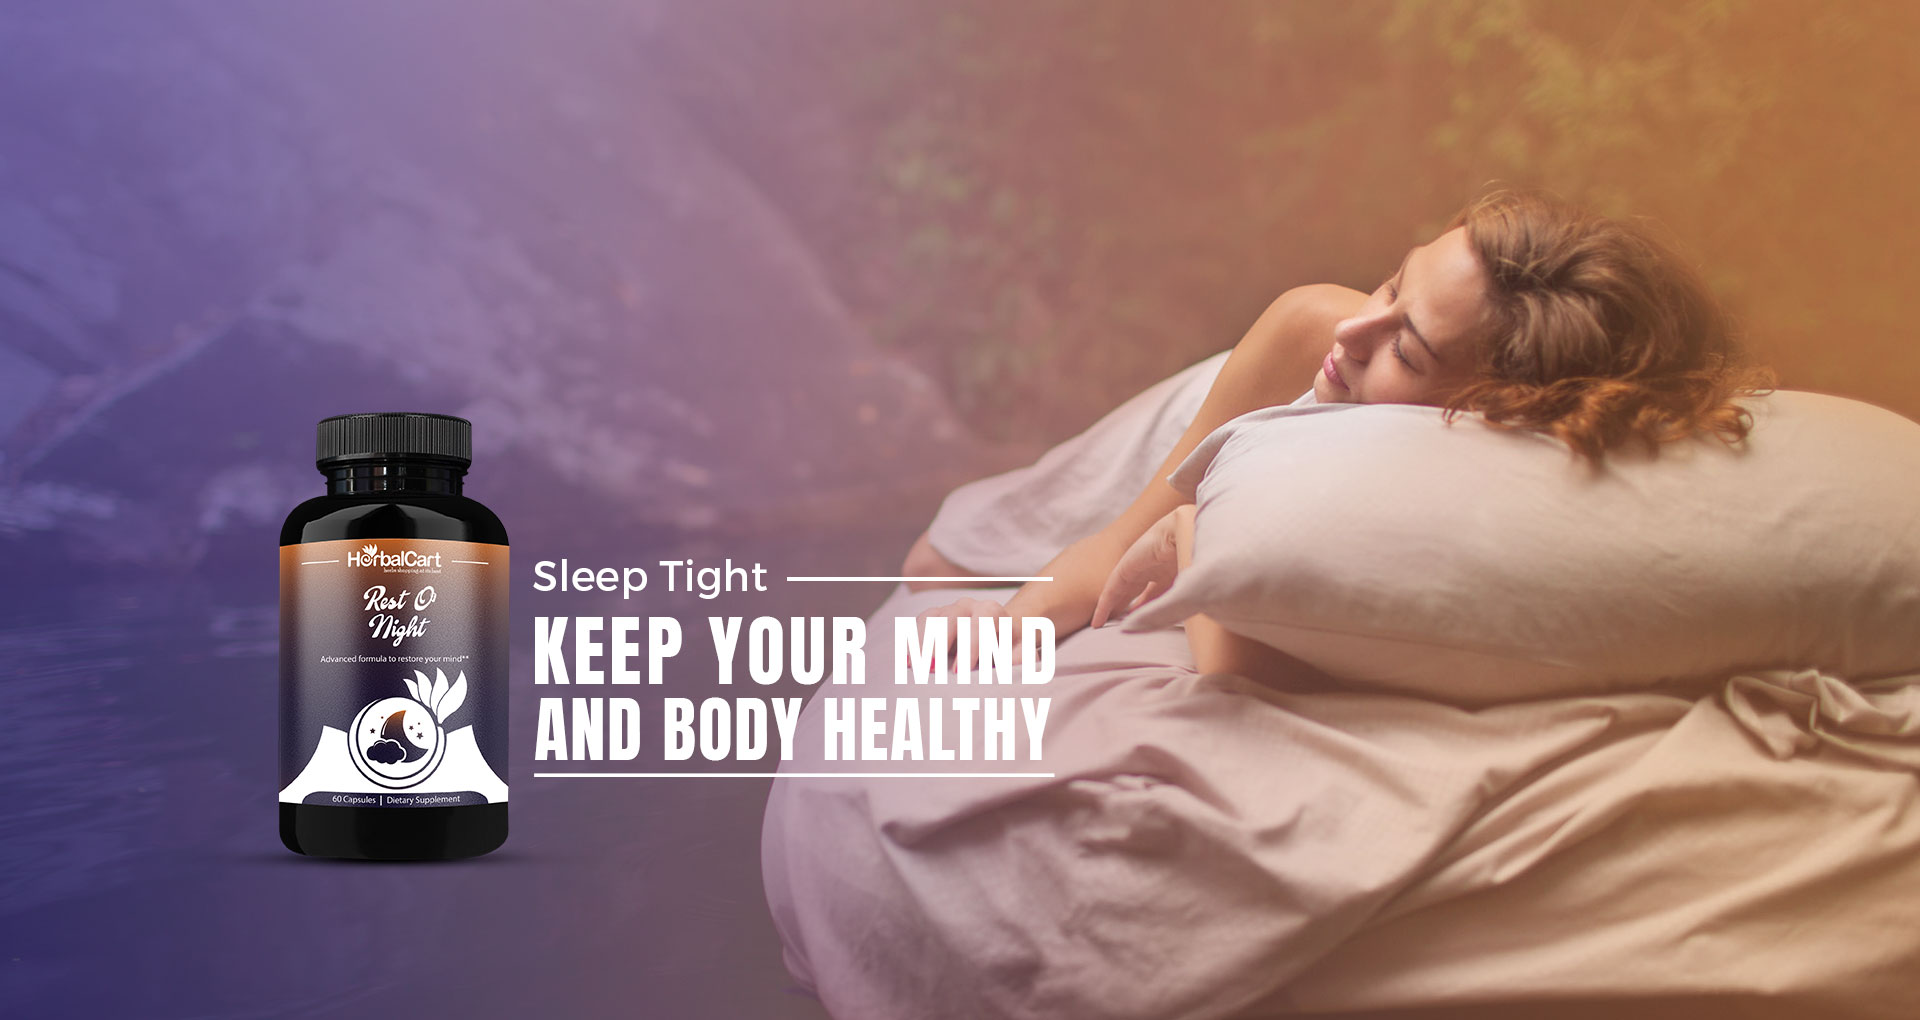 sleeping woman by herbal supplement Rest o Night